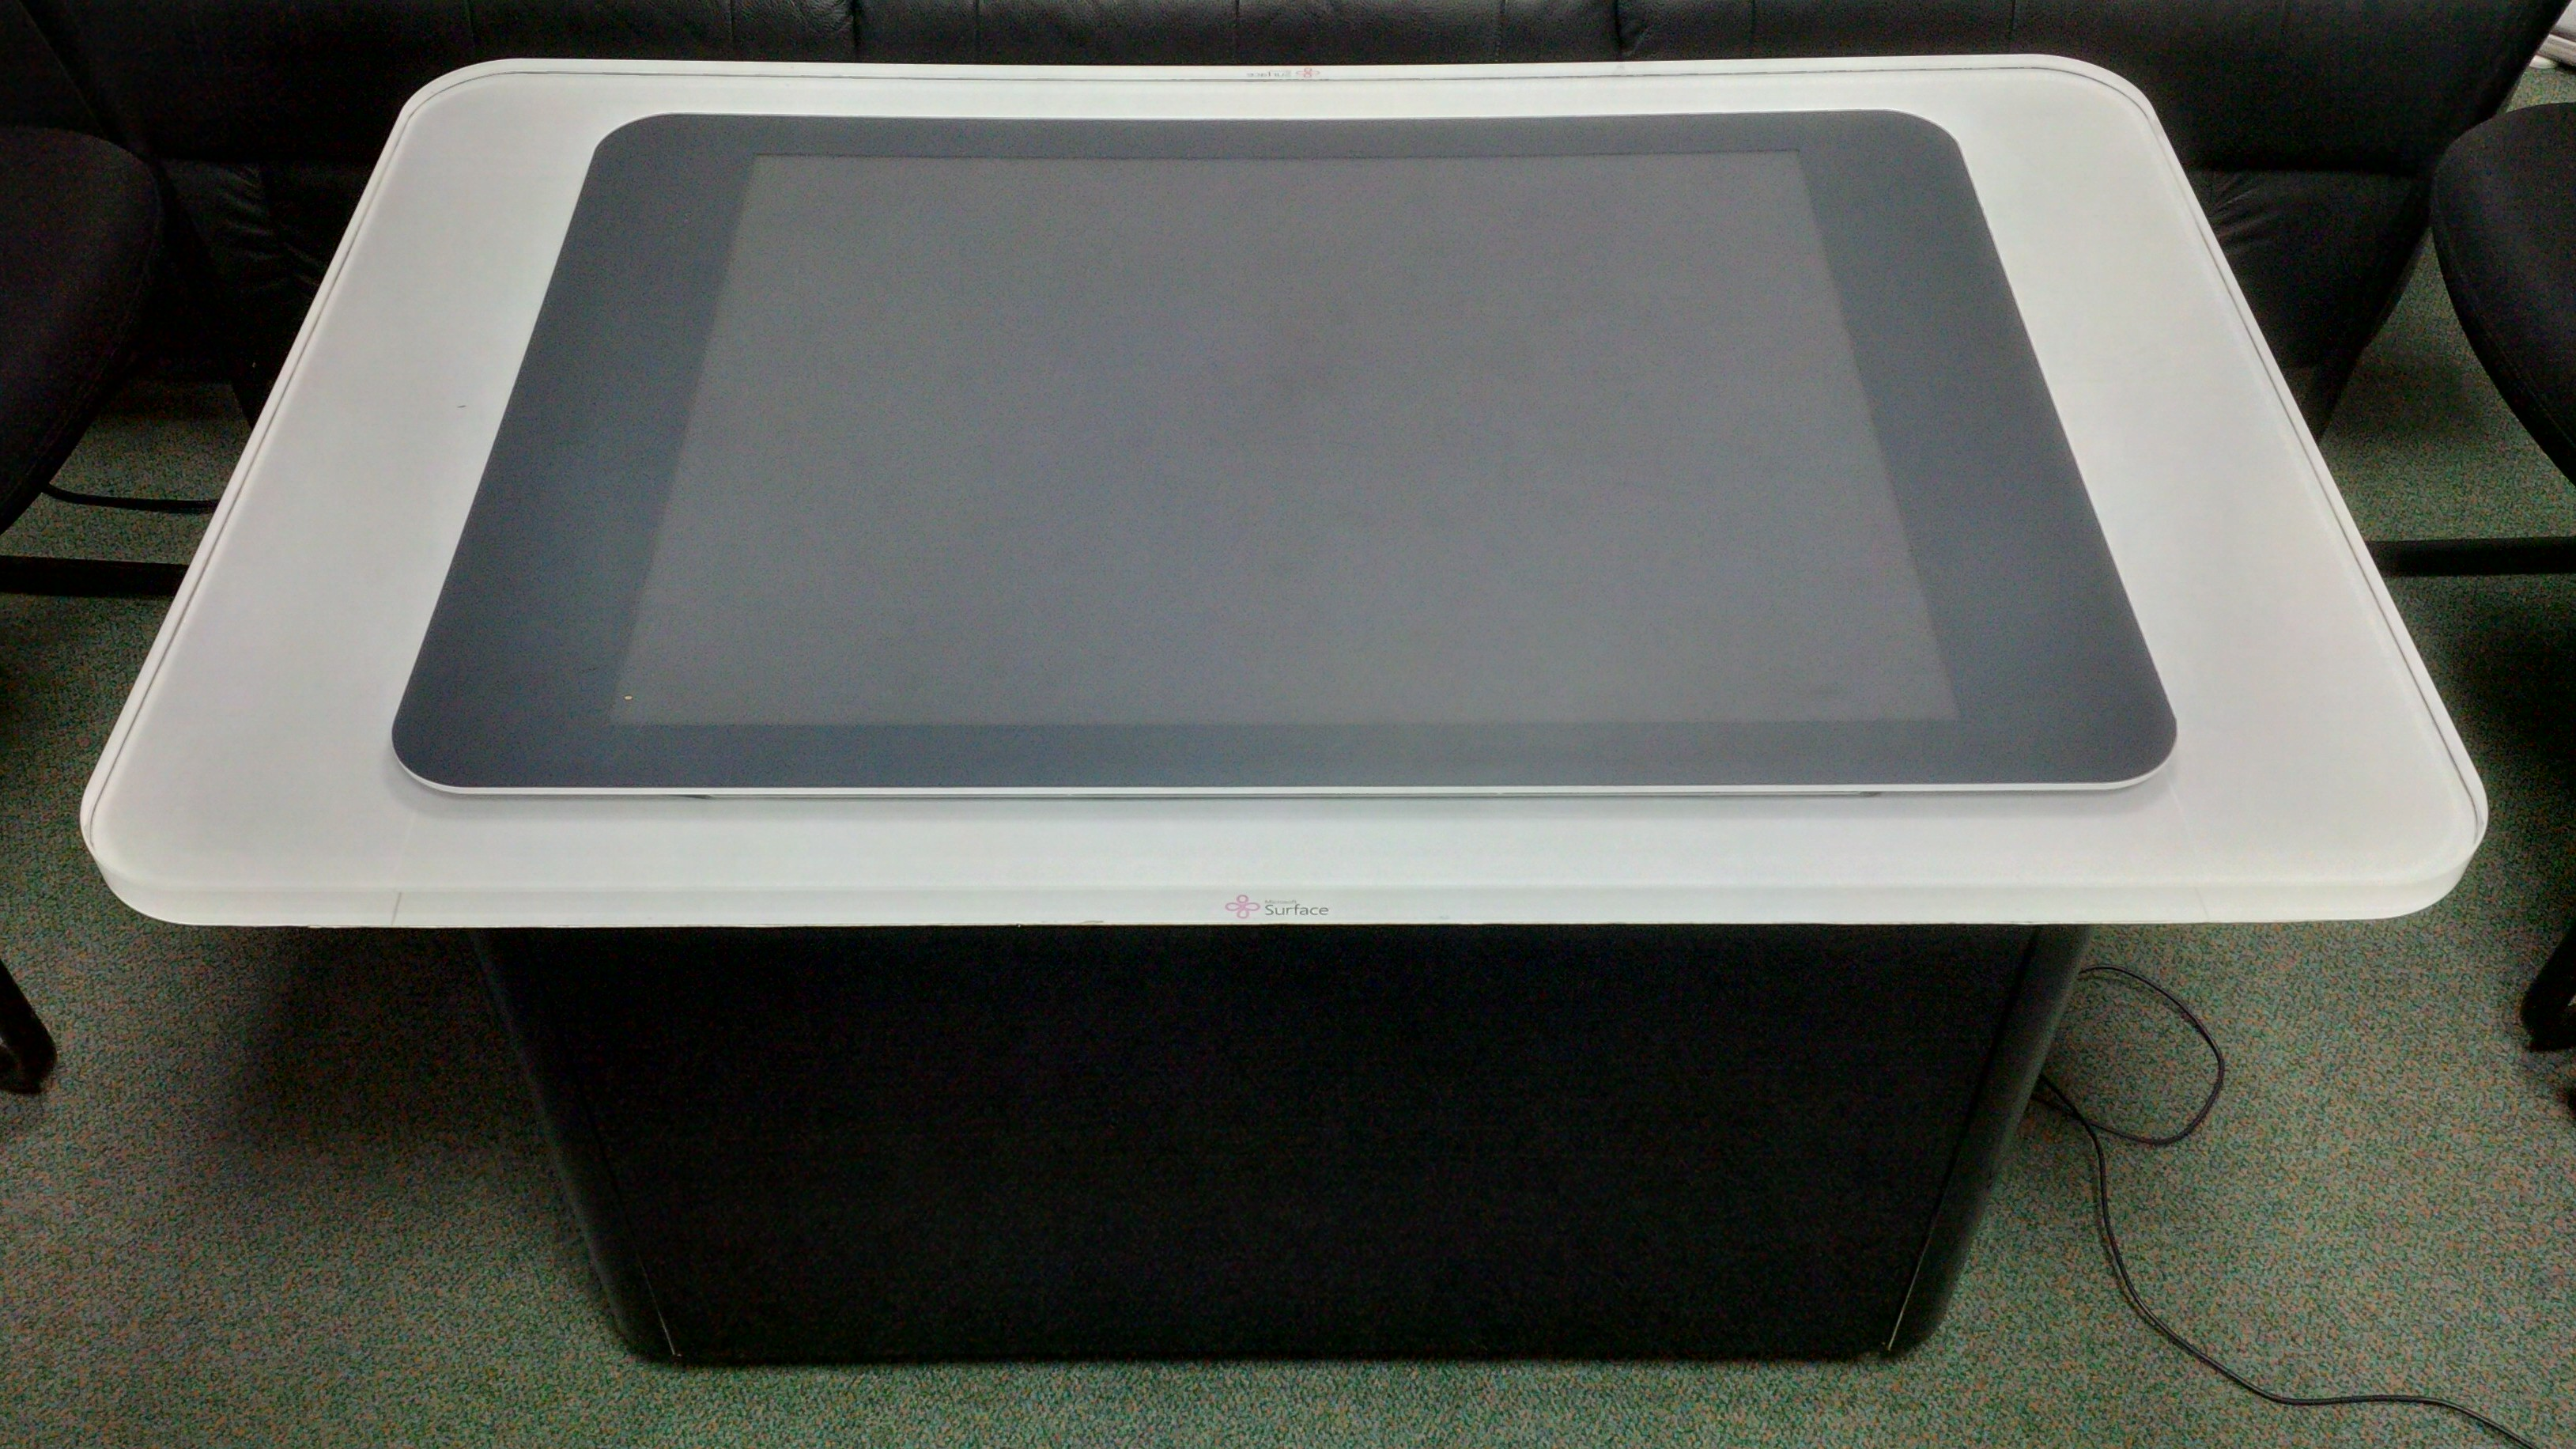 Microsoft Surface 1 0 Pixel Sense 30 Screen Coffee Table